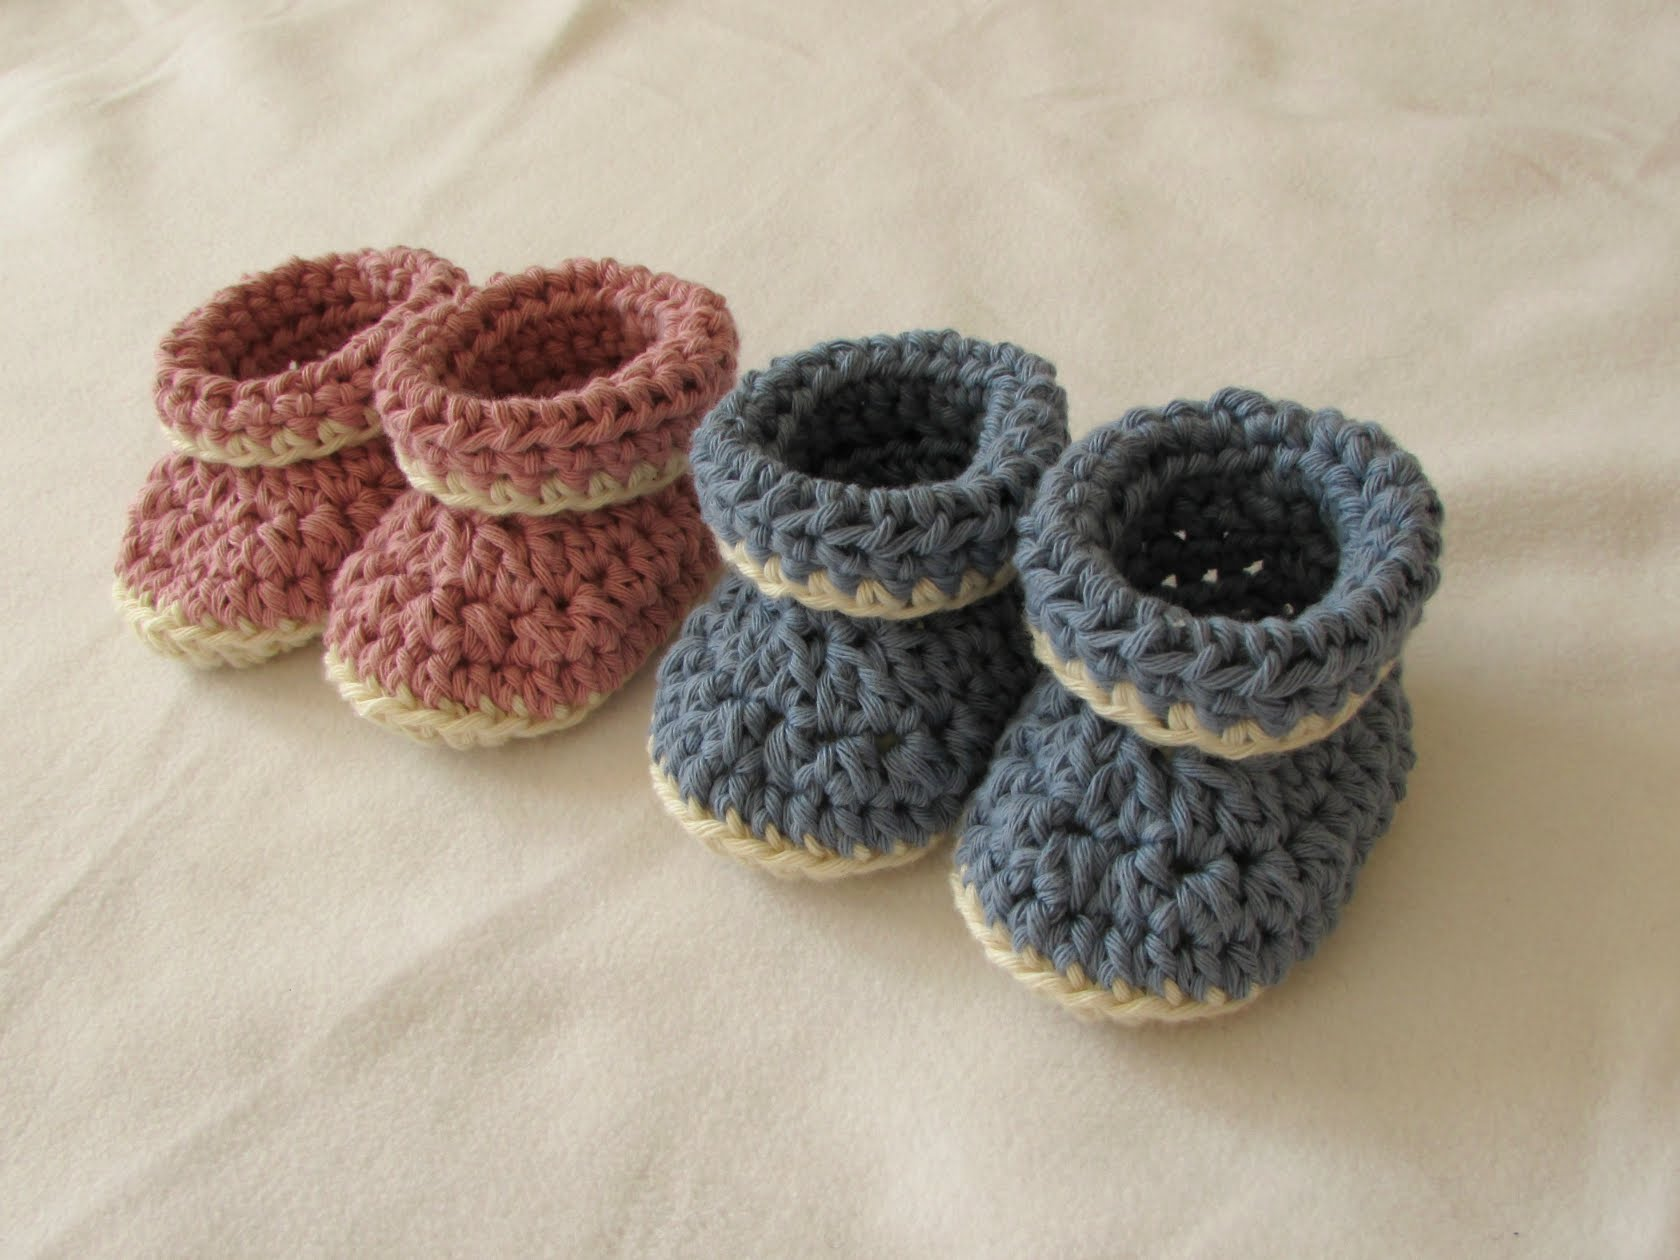 crochet baby booties very easy crochet cuffed baby booties tutorial - roll top baby shoes for  beginners RDLZHMN